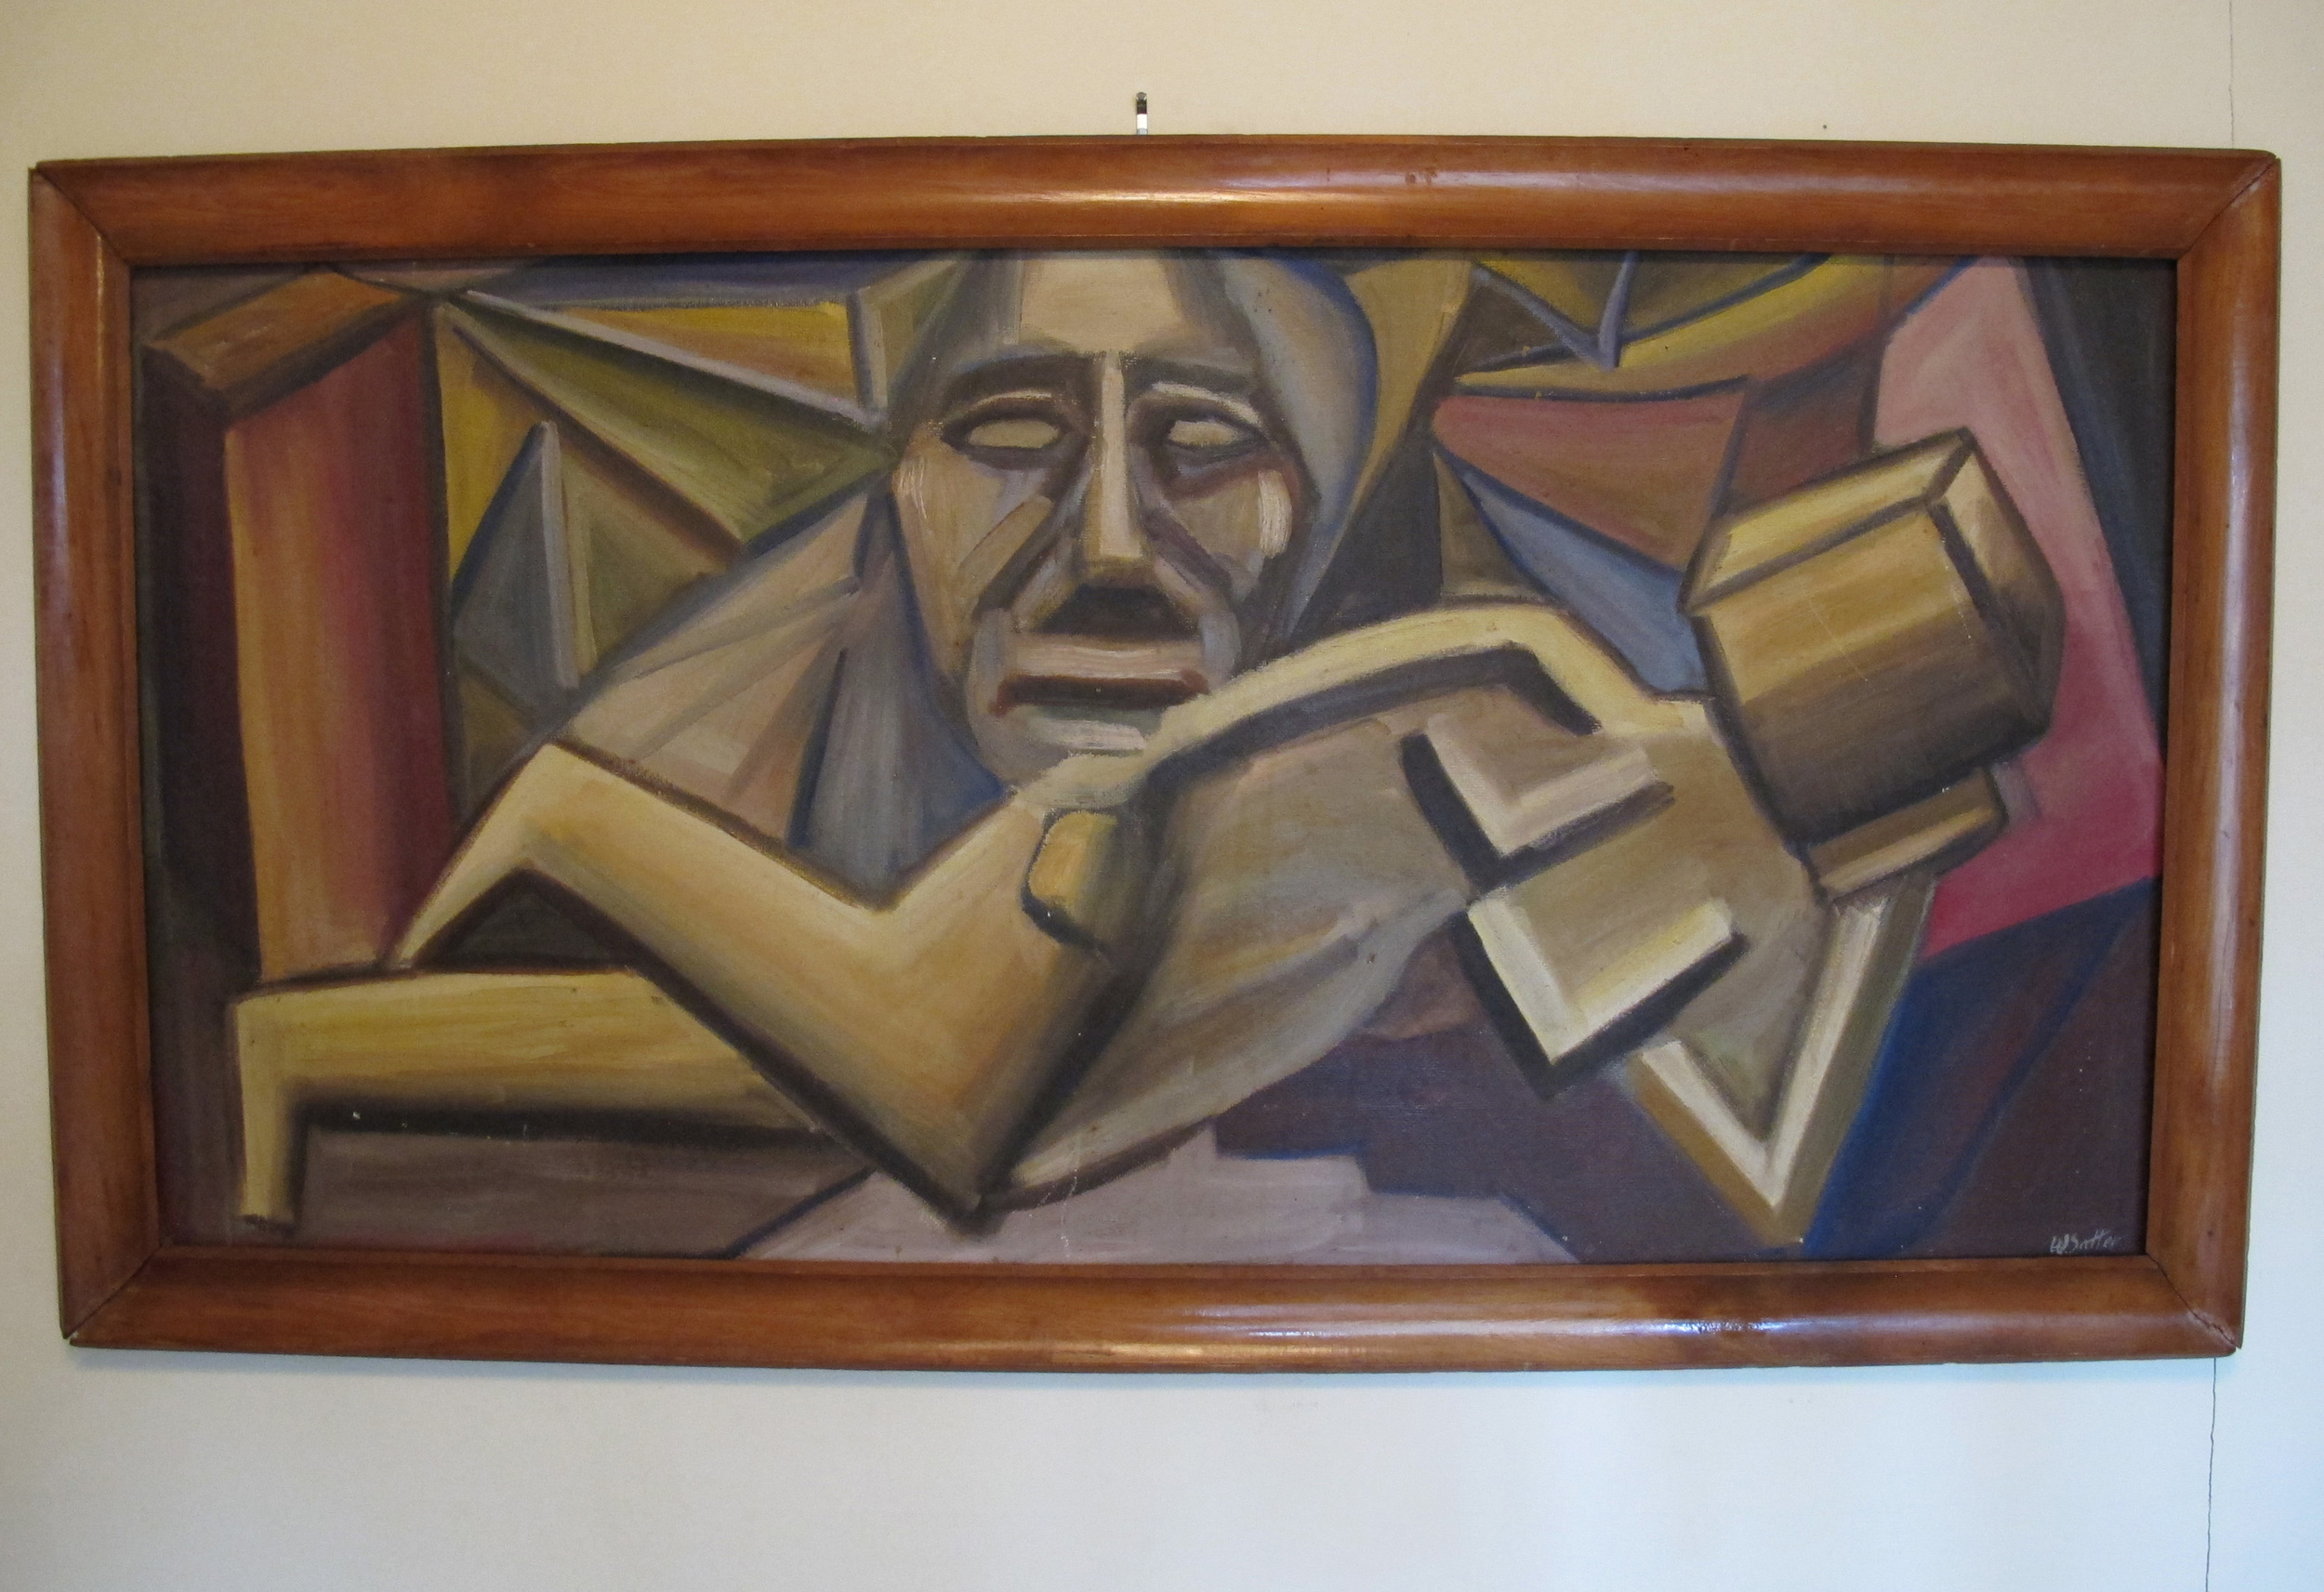 MID CENTURY CUBIST INFLUNCED PAINTING ON BOARD BY WARREN SATTER